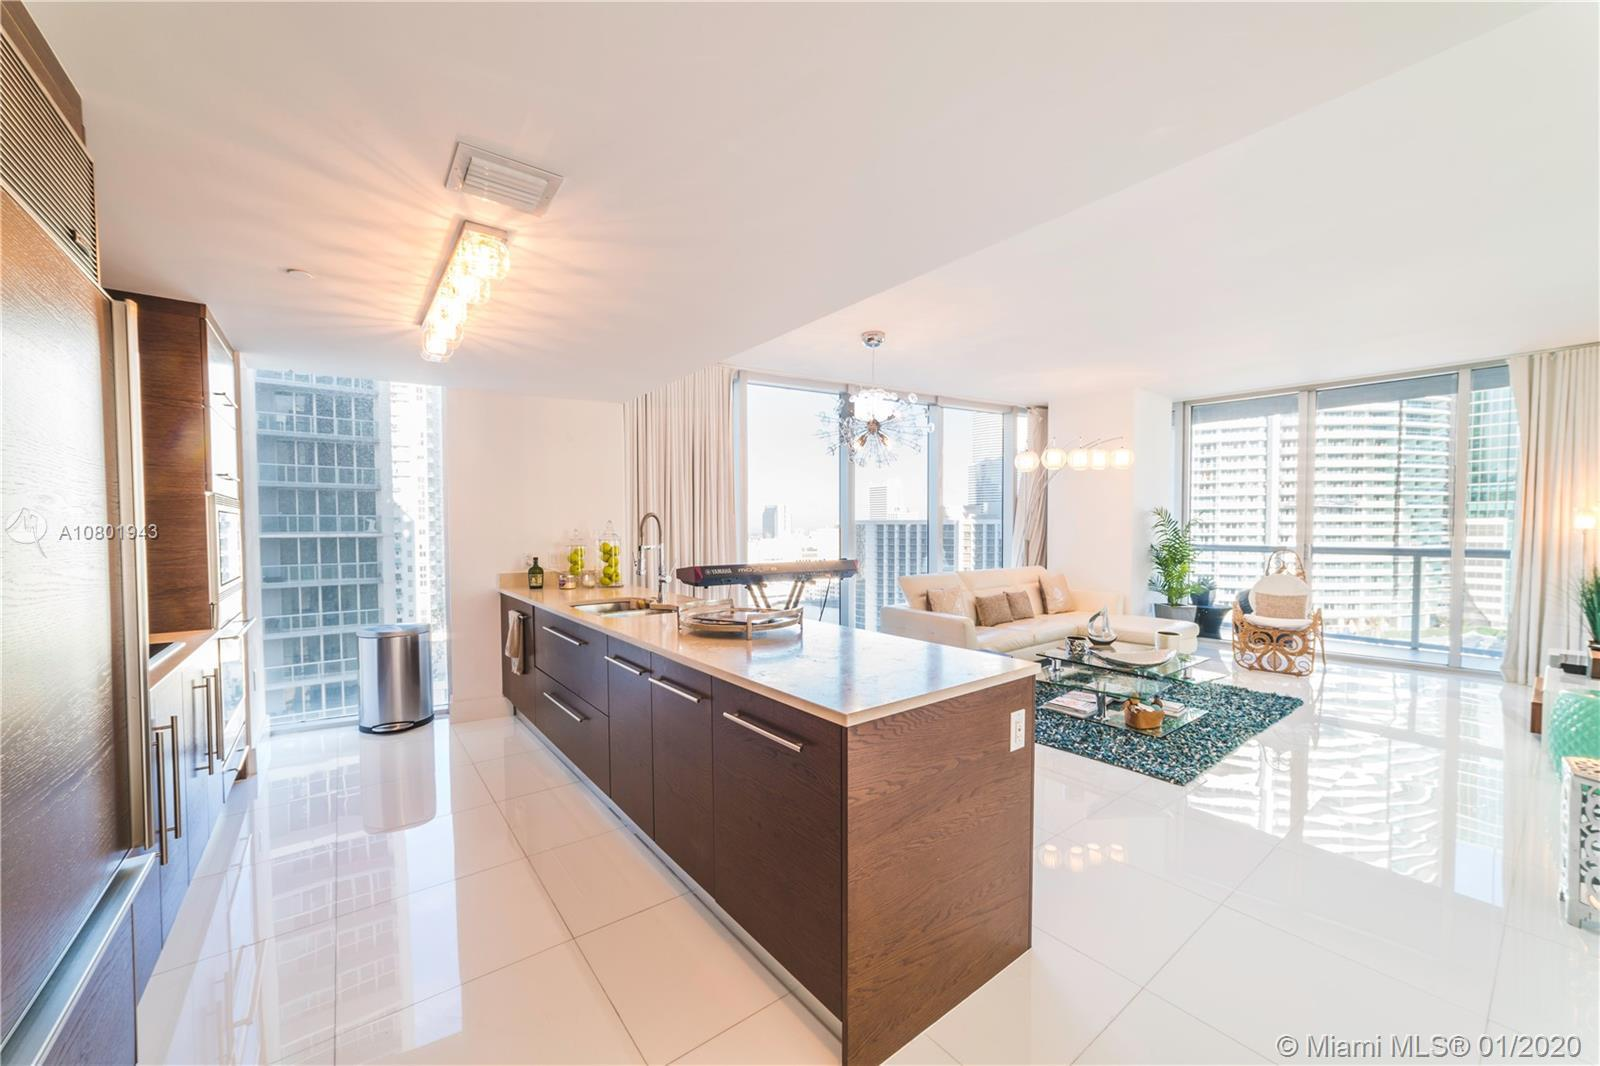 Spectacular, bright and spacious 2 bedrooms and 2 bathrooms corner unit with breathtaking views of B